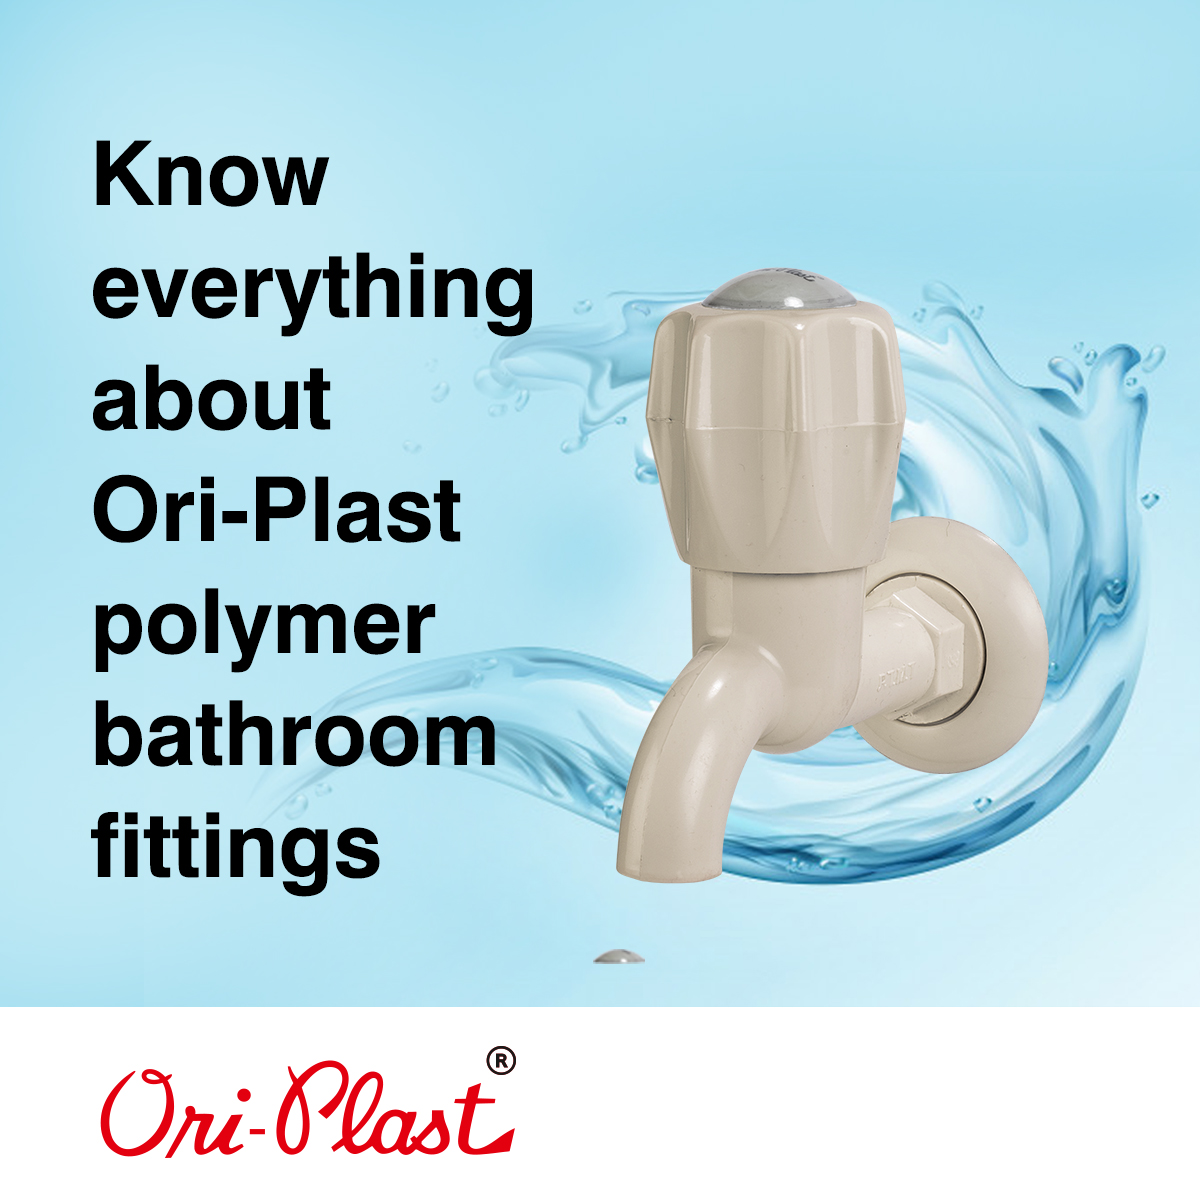 Know everything about Ori-Plast polymer bathroom fittings